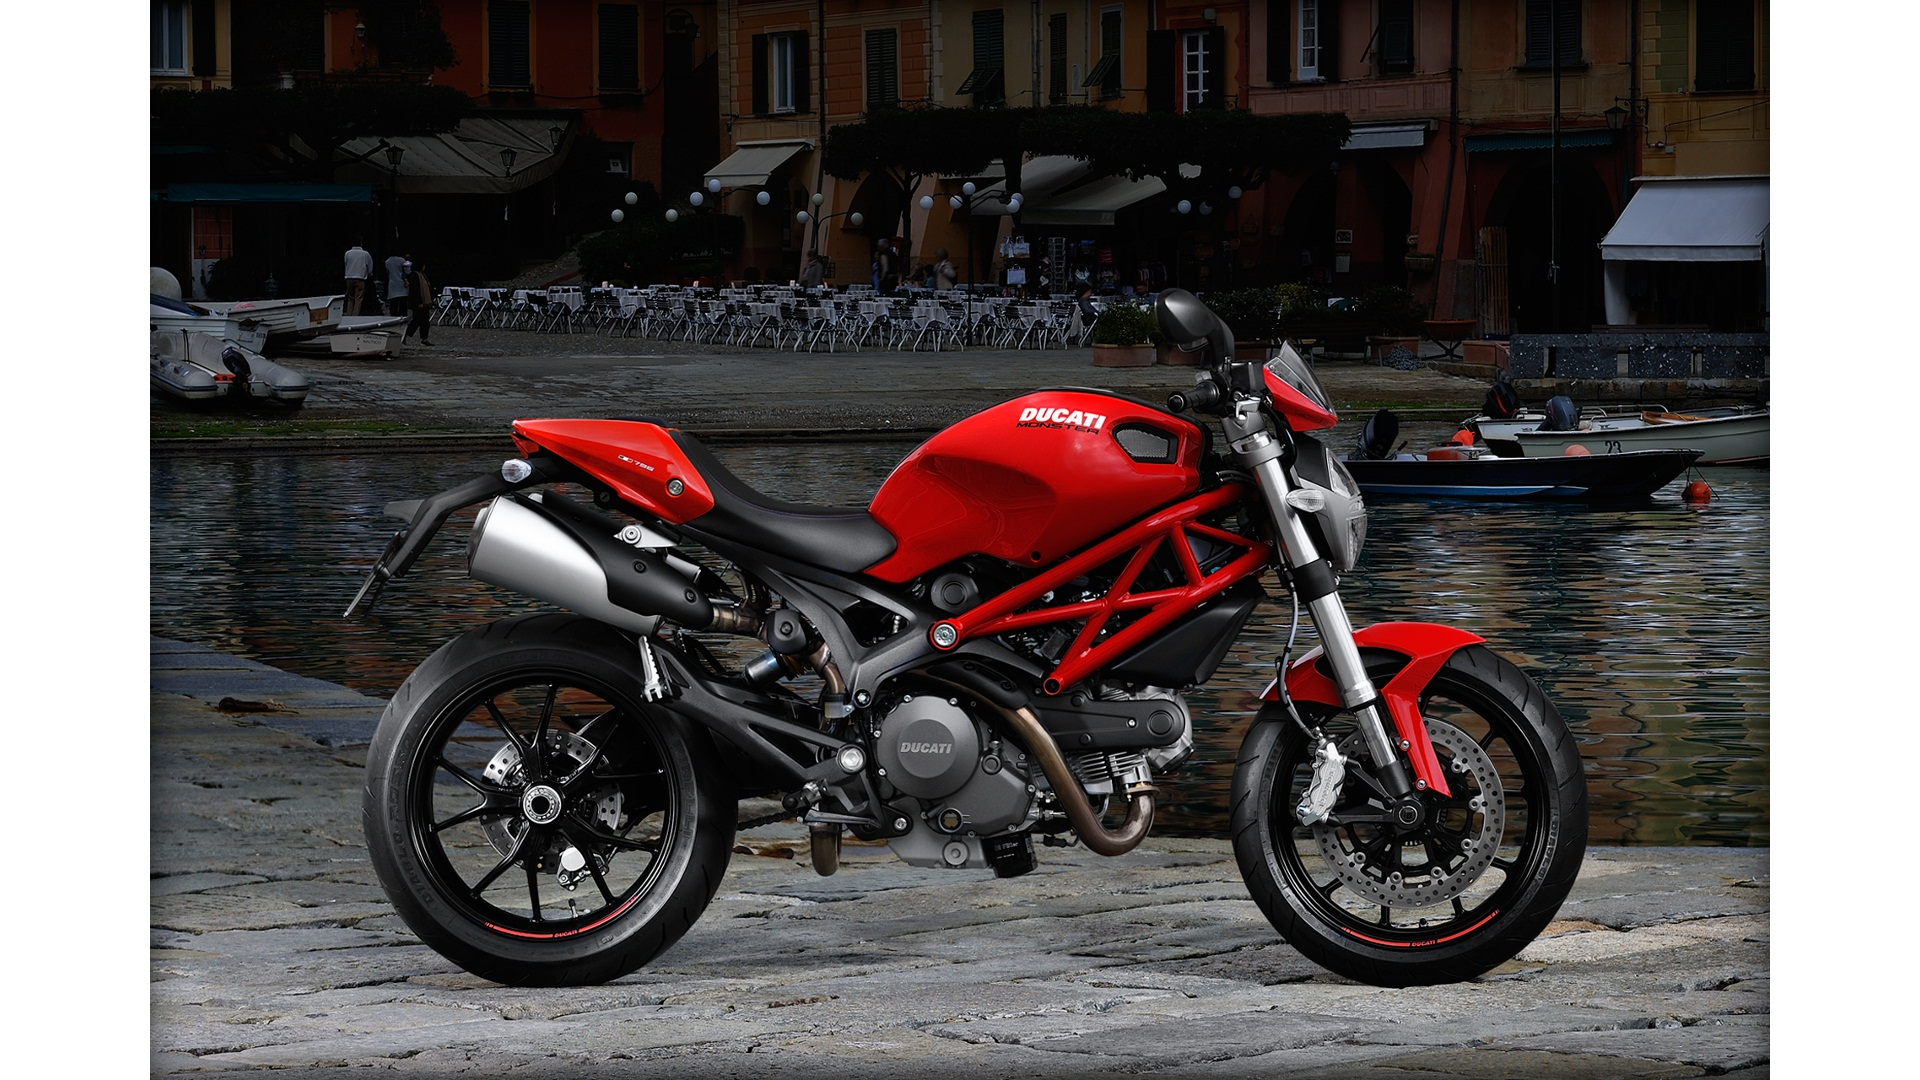 2013 Ducati Monster 796 20th Anniversary | Top Speed. »